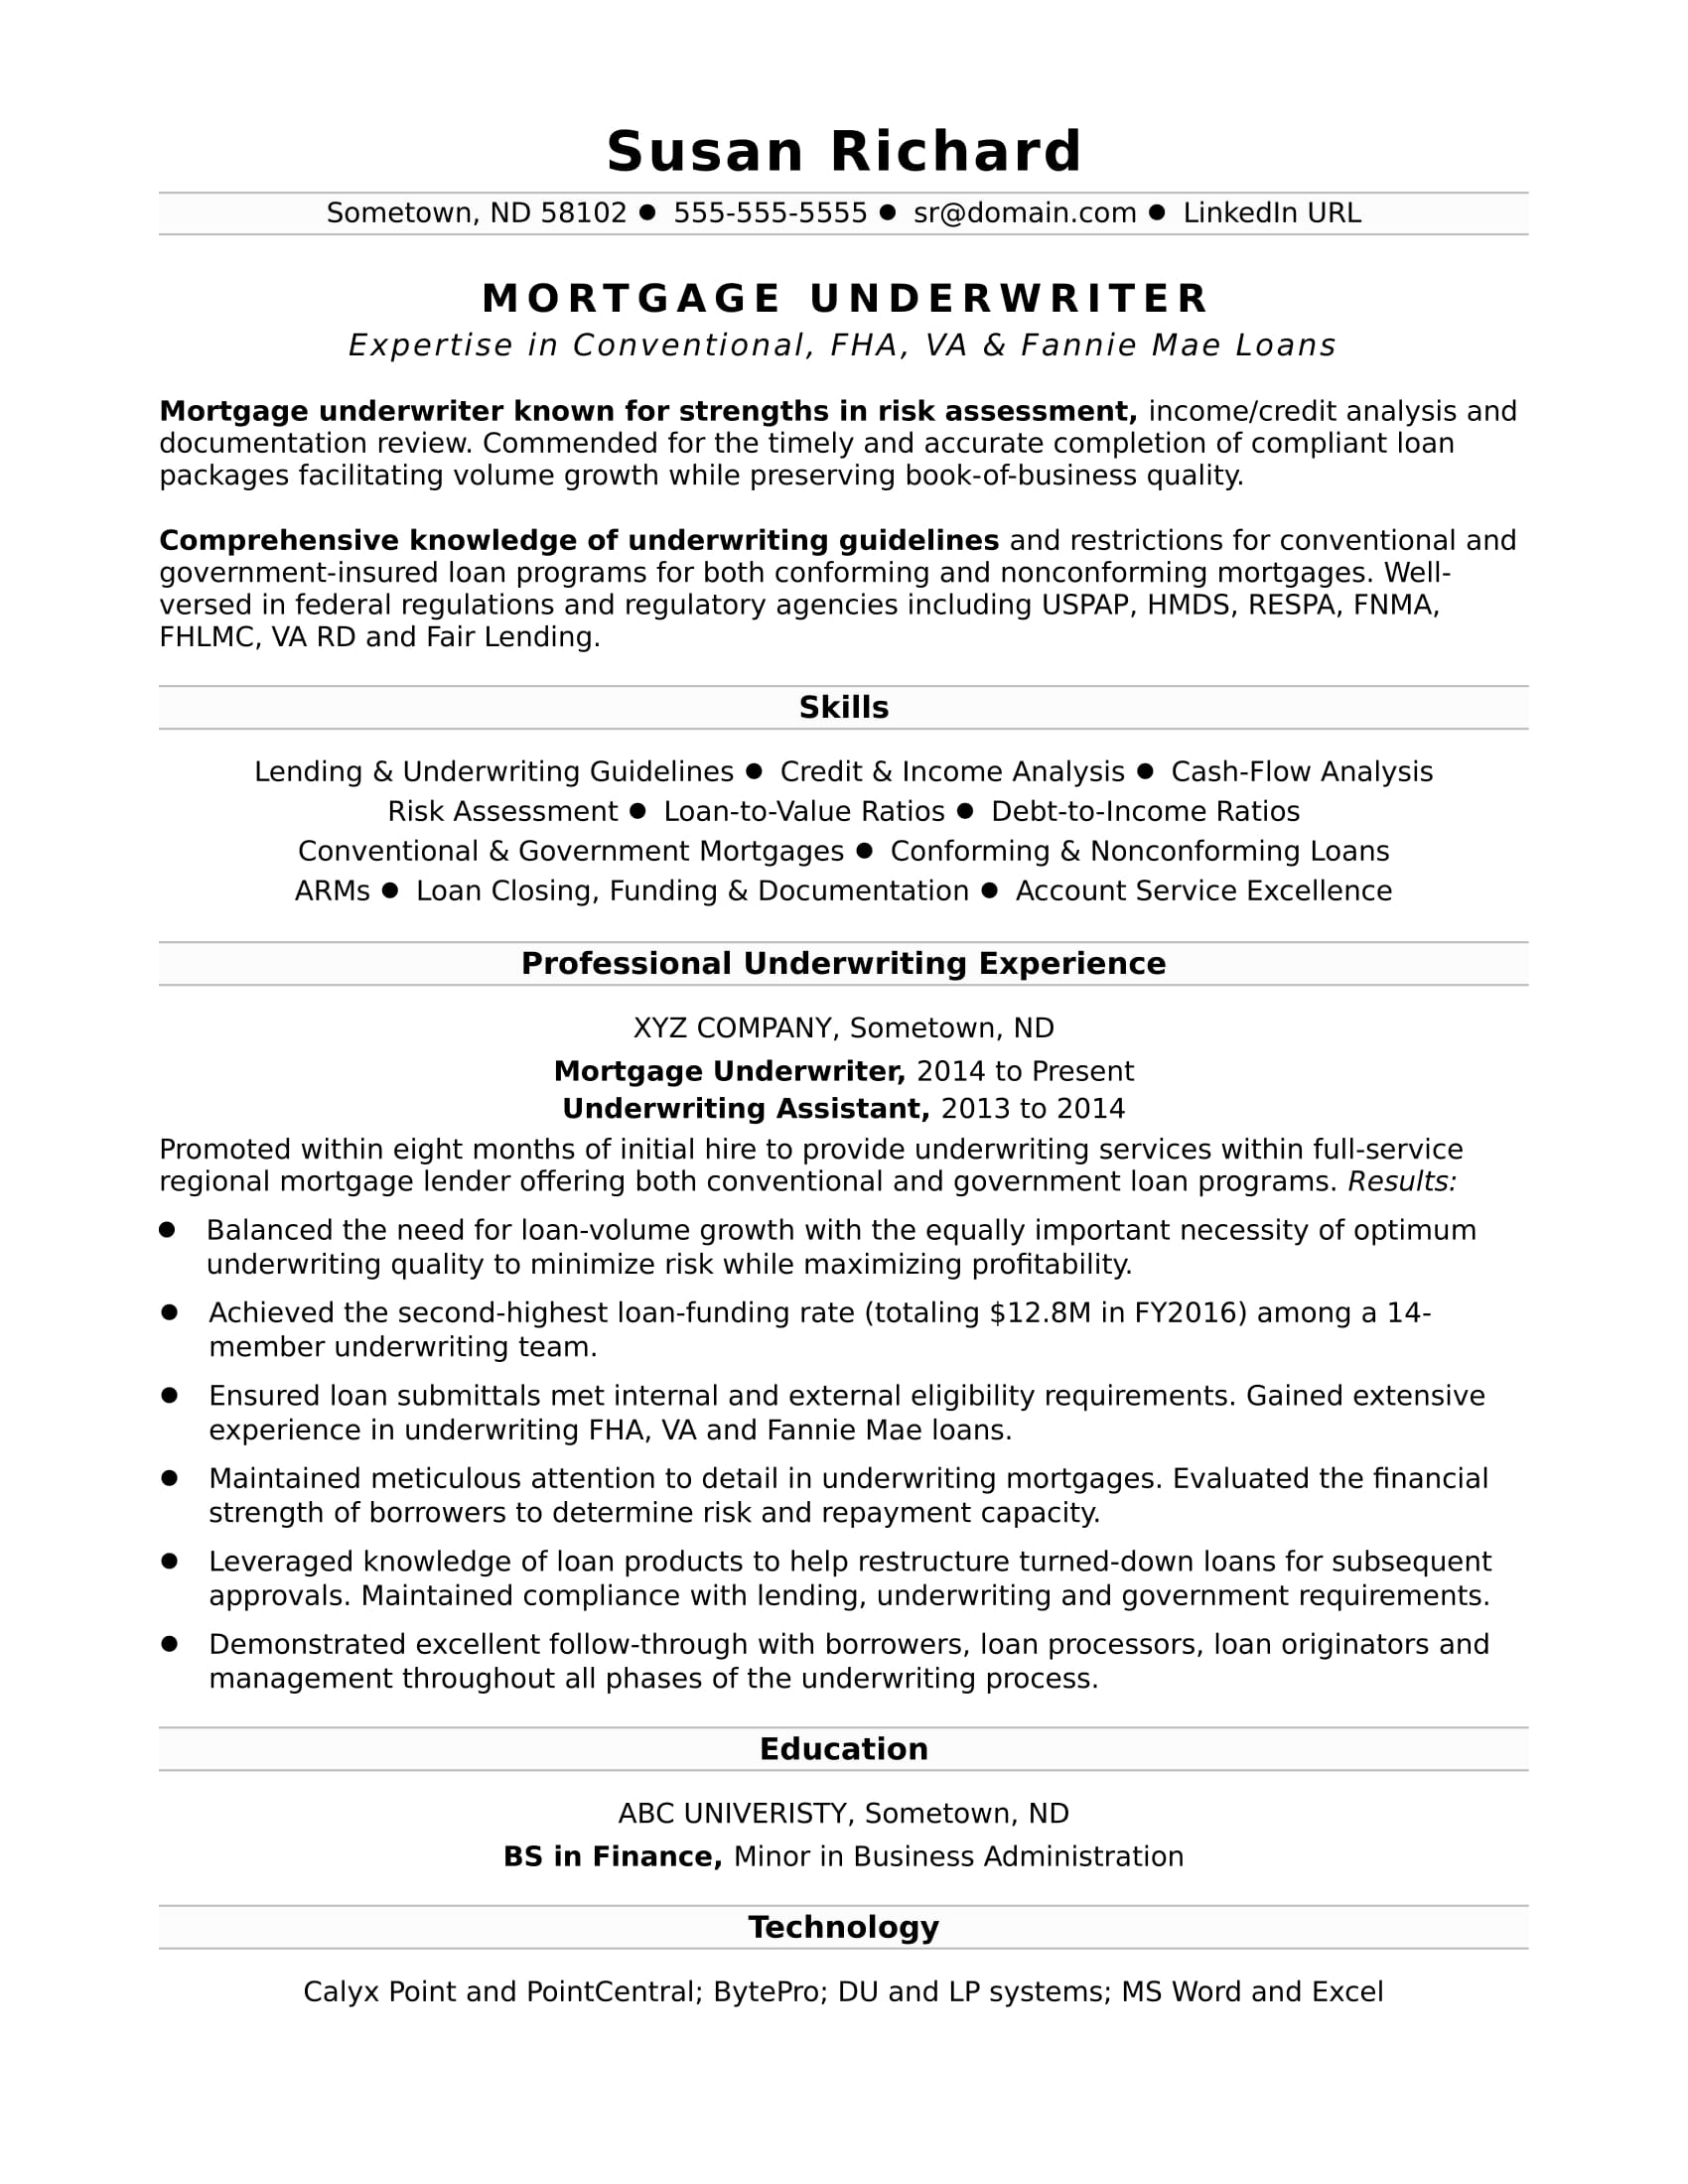 Sample Resume For A Mortgage Underwriter  Mortgage Loan Processor Resume